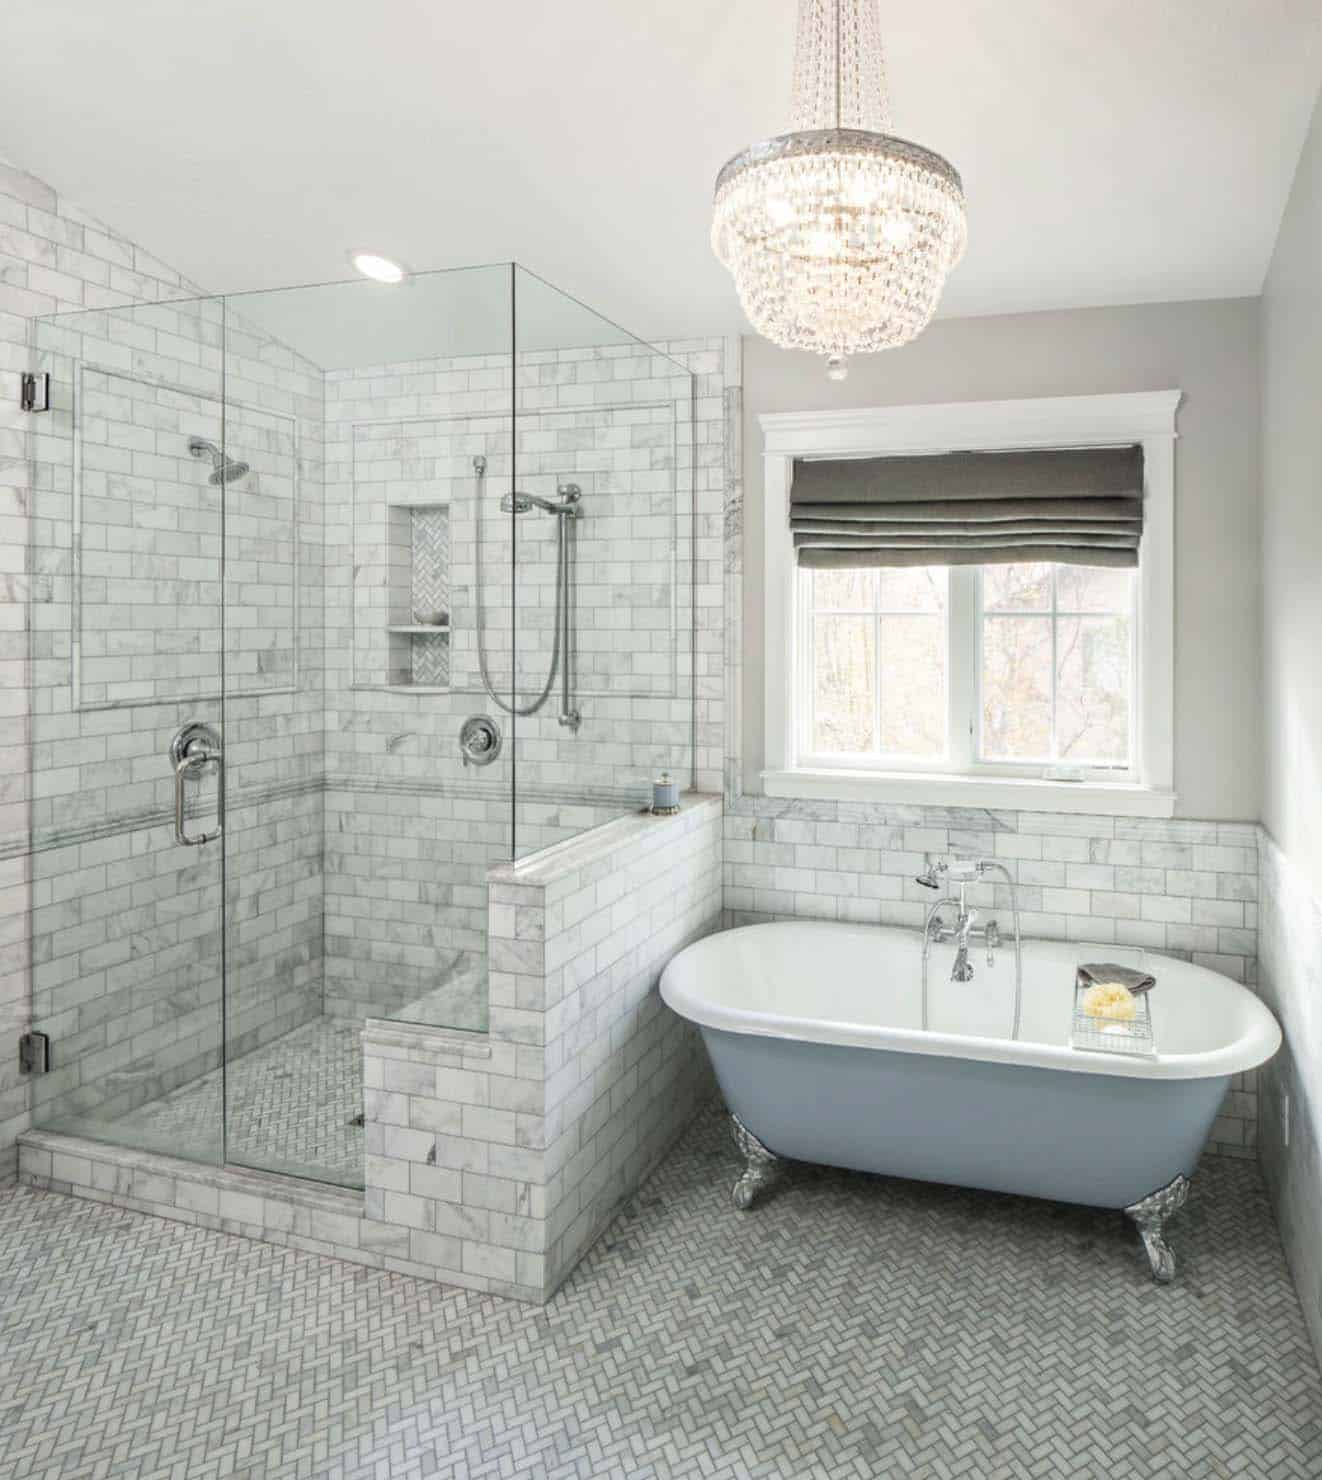 Get The Look With These Traditional Bathroom Ideas: 53 Most Fabulous Traditional Style Bathroom Designs Ever